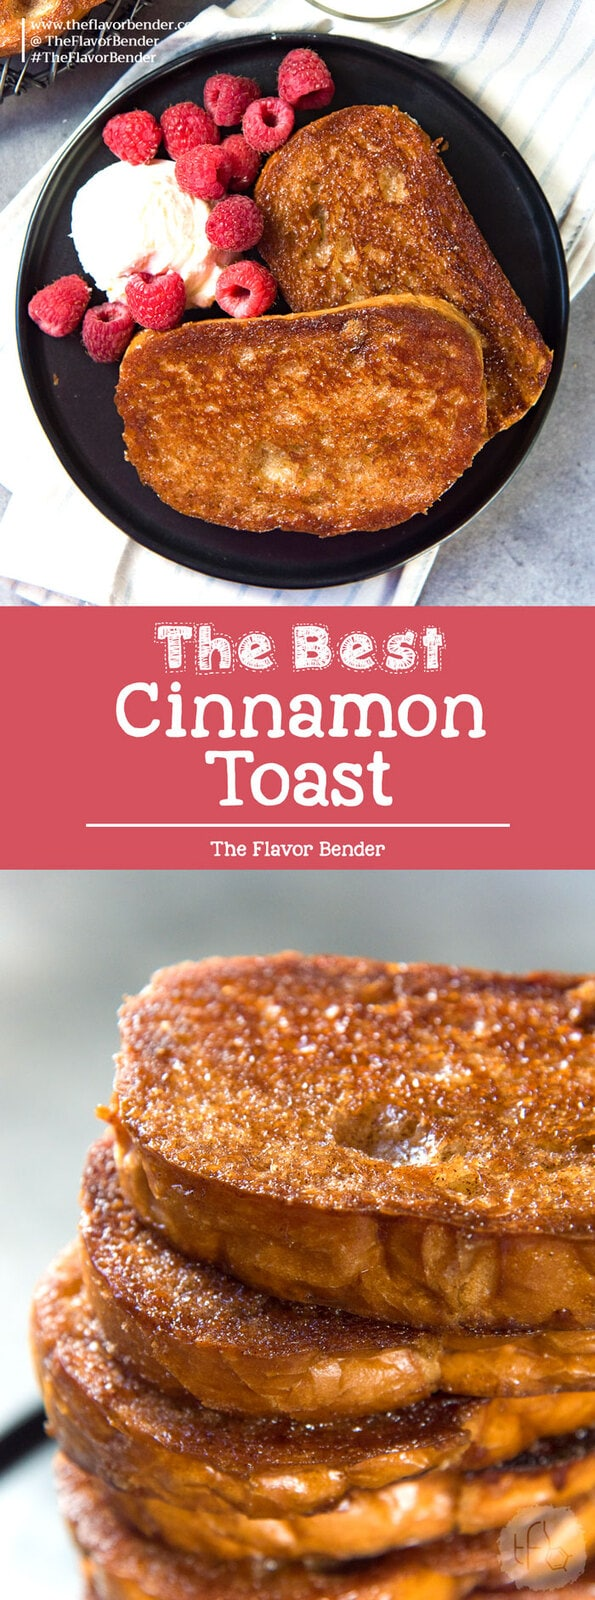 Best Cinnamon Toast - Sweet, crunchy, salty and delicious cinnamon toast with a crunchy, caramelized surface like Creme Brulee! Perfect for dessert or breakfast! #CinnamonToast #Breakfast #Dessert